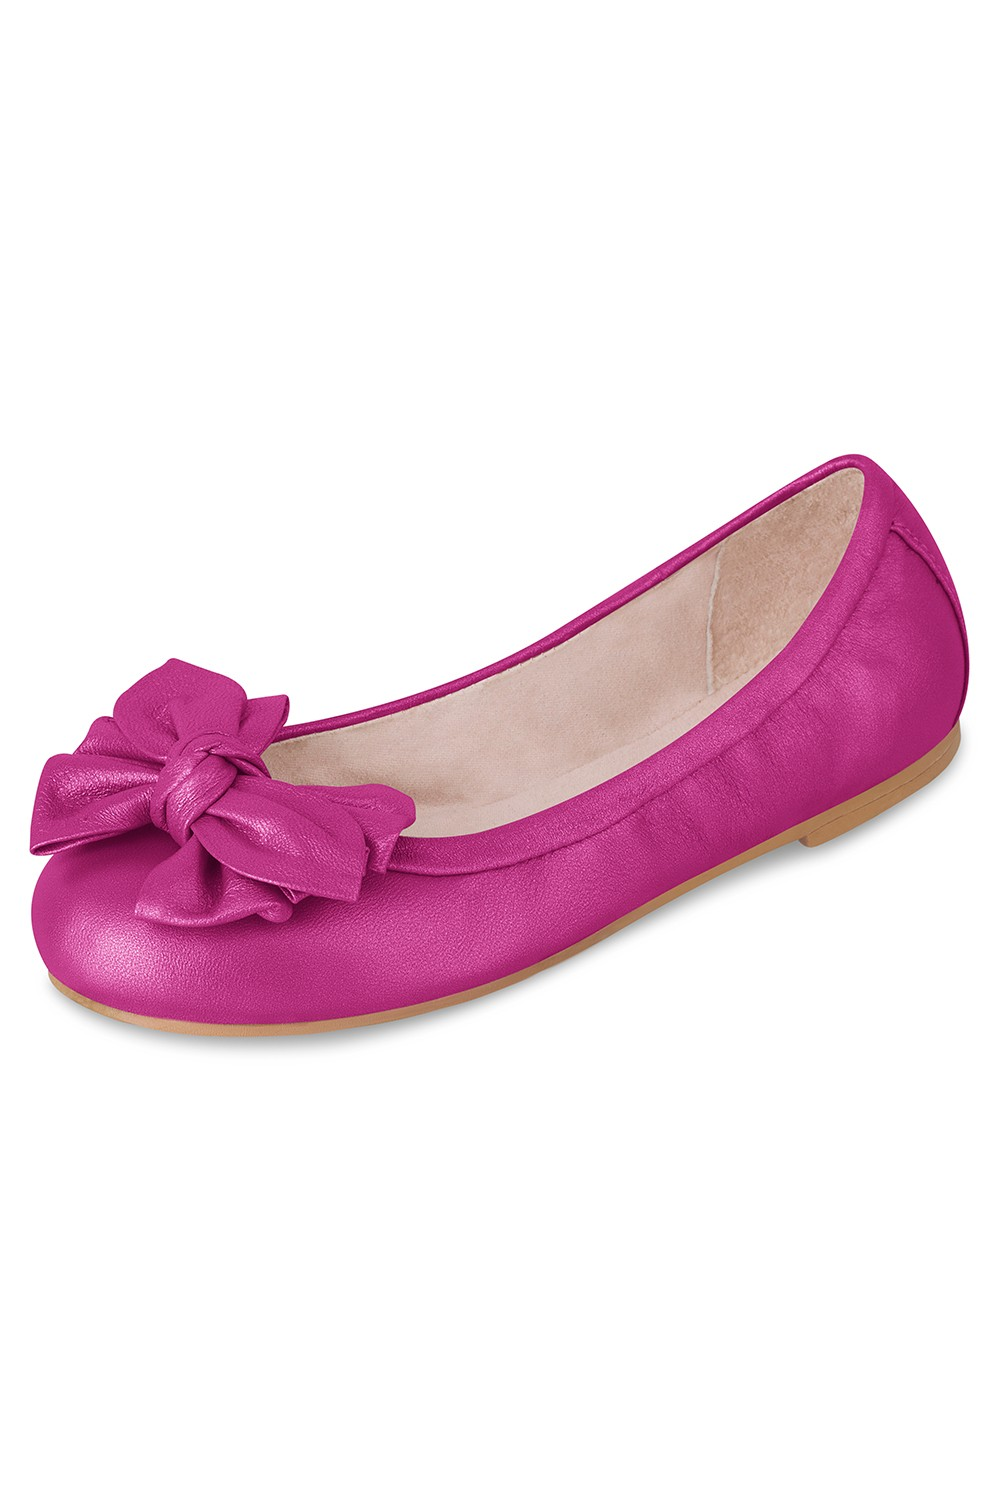 Clara - Fille Girls Fashion Shoes